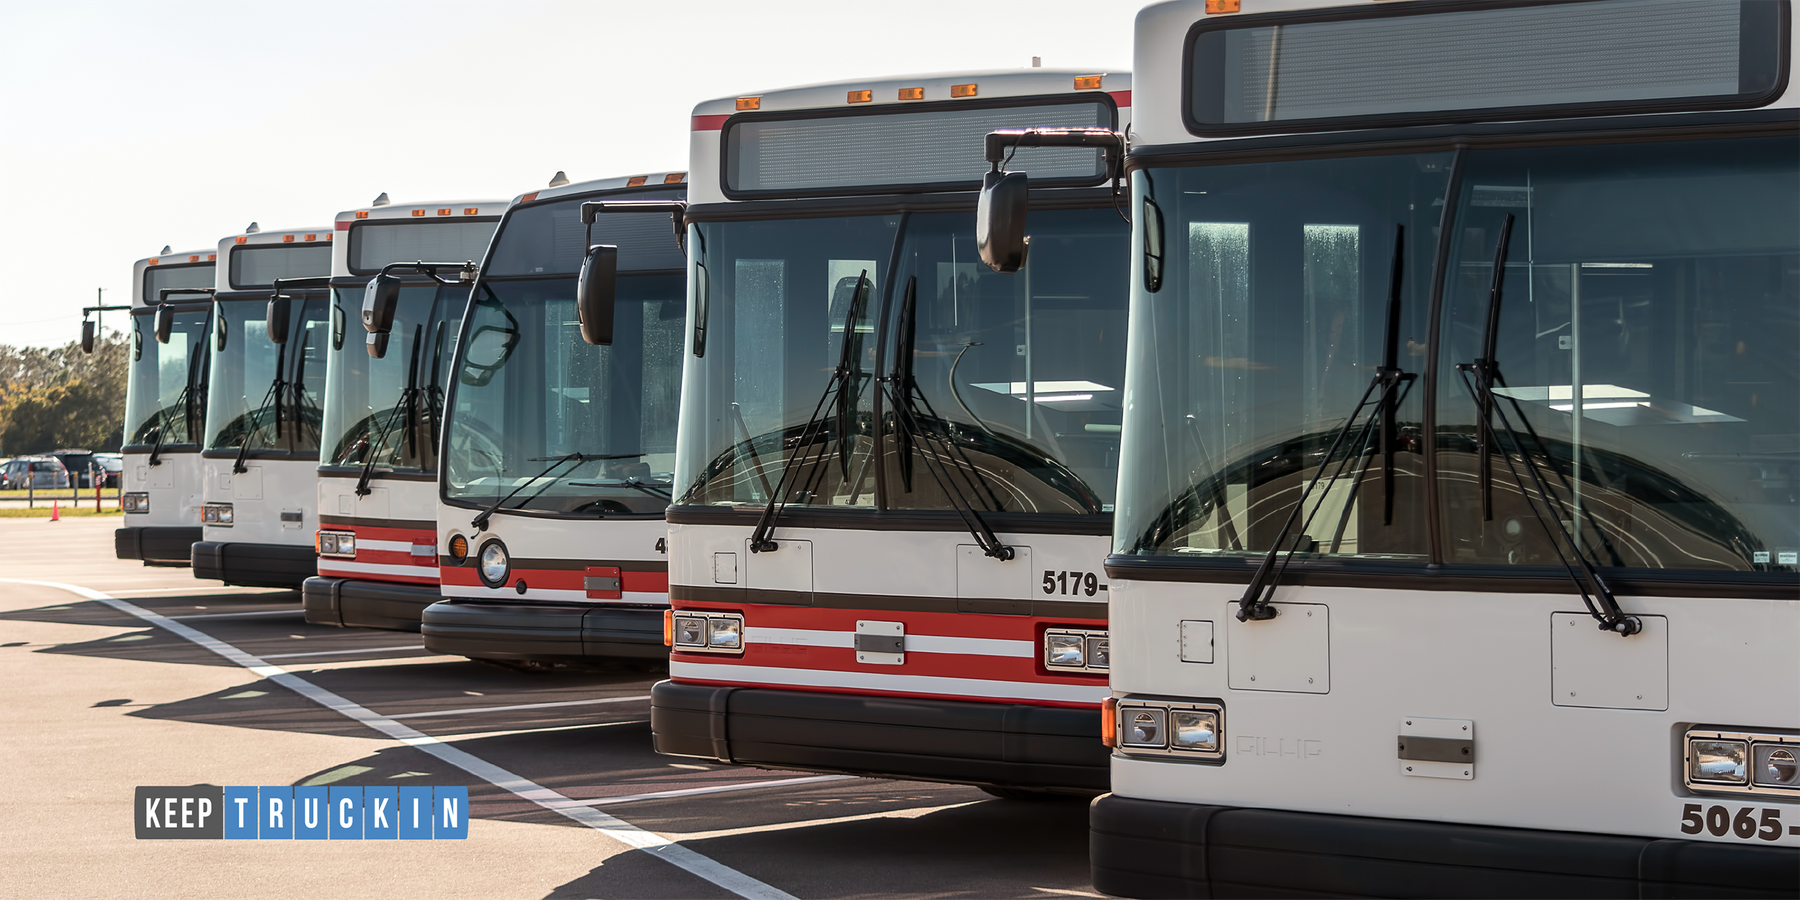 How motorcoach companies can improve safety with a fleet management solution